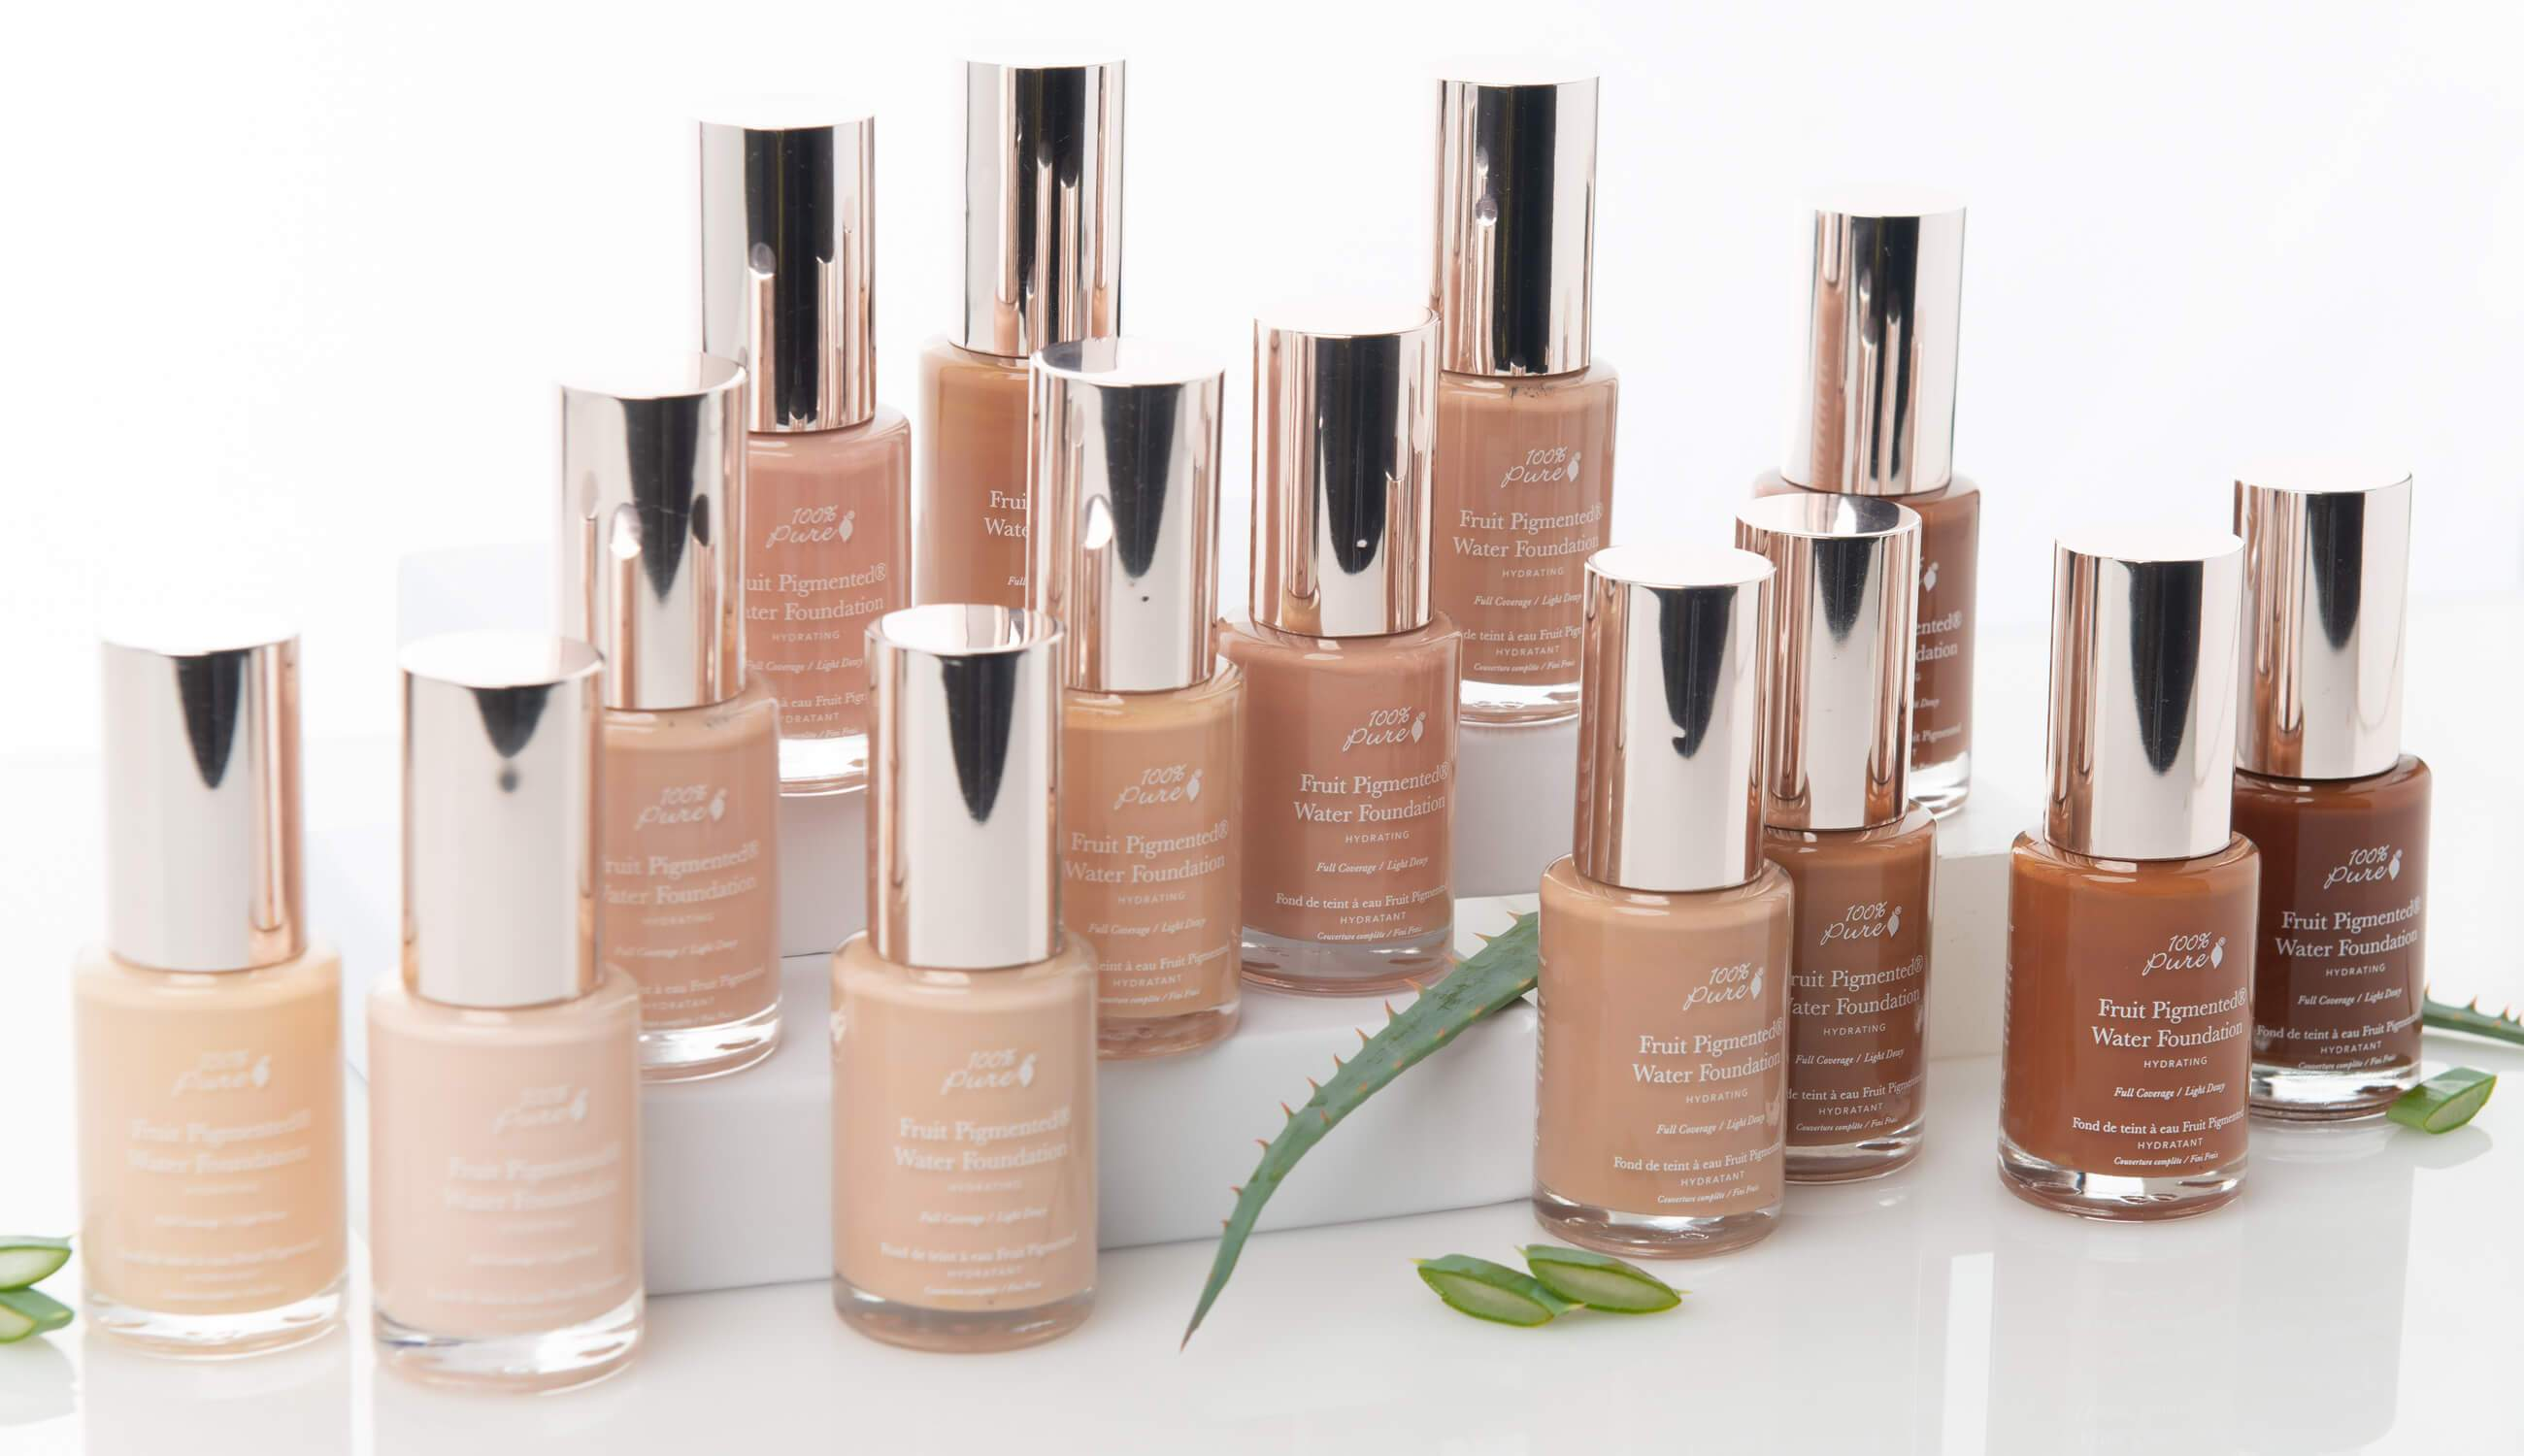 100% Pure Naturkosmetik Foundation / Full Coverage Water Foundation